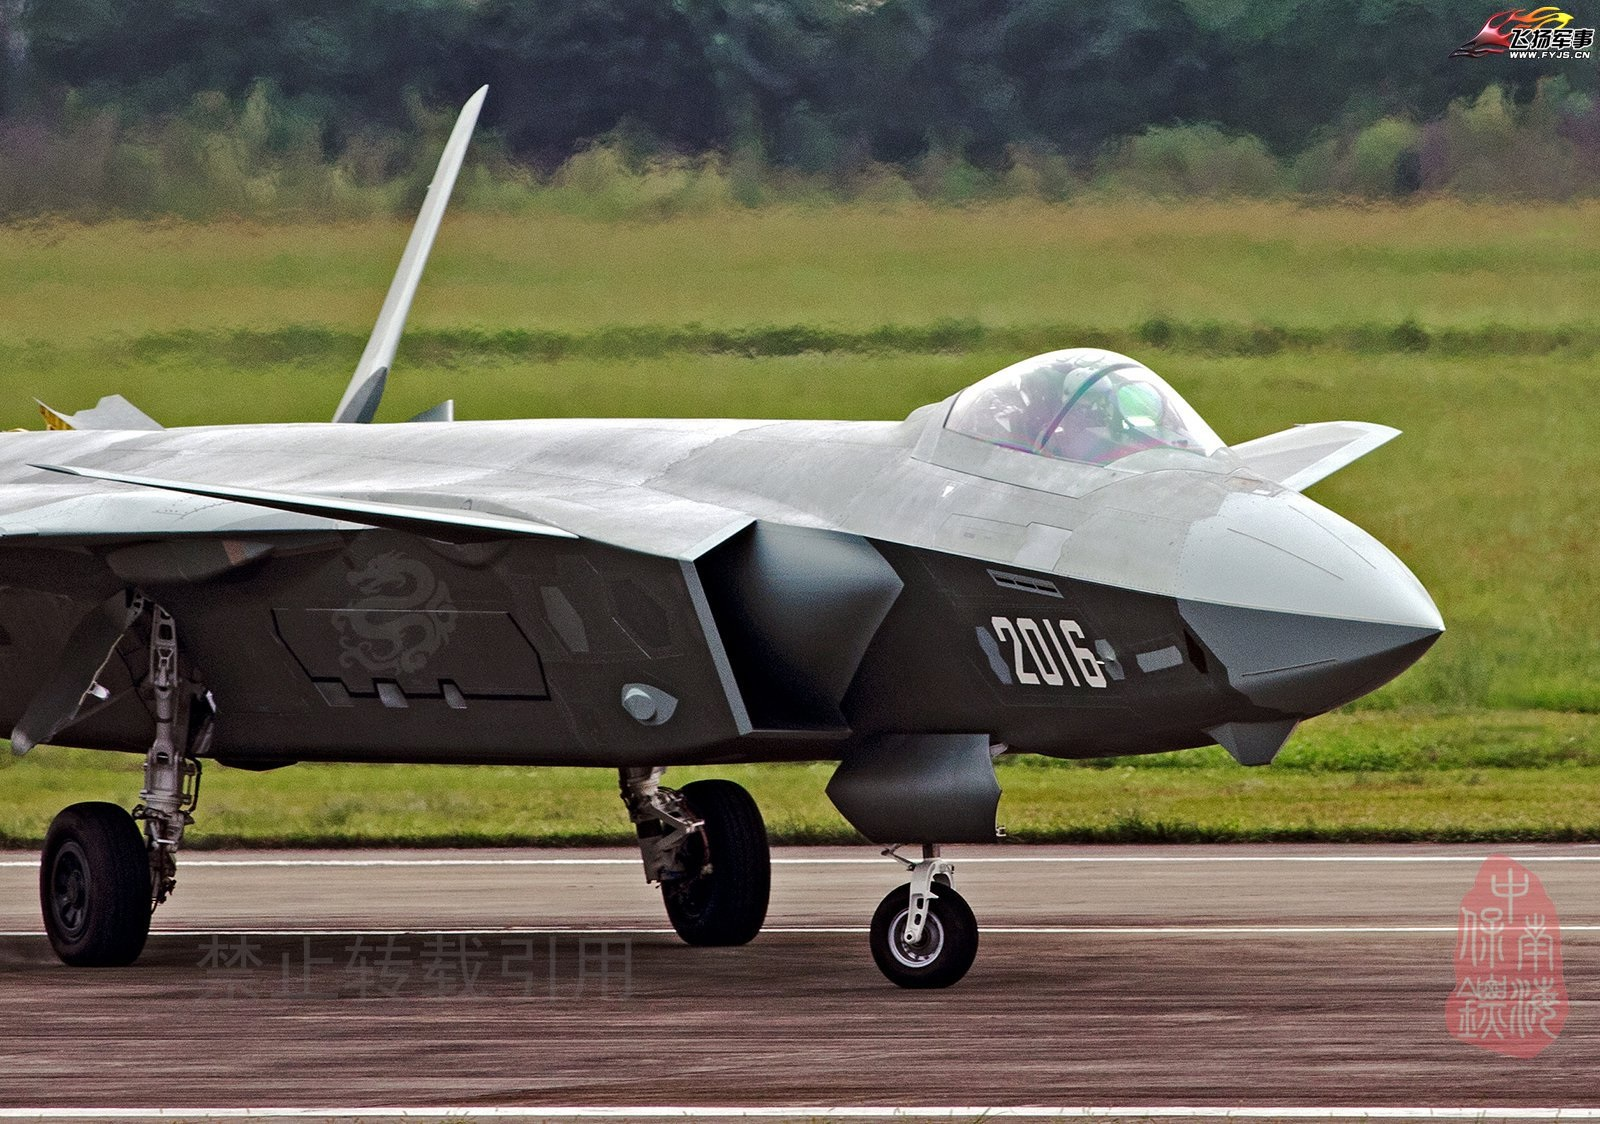 China's J-20 'Heavy' Stealth Fighter: Can It Kill F-22 and F-35